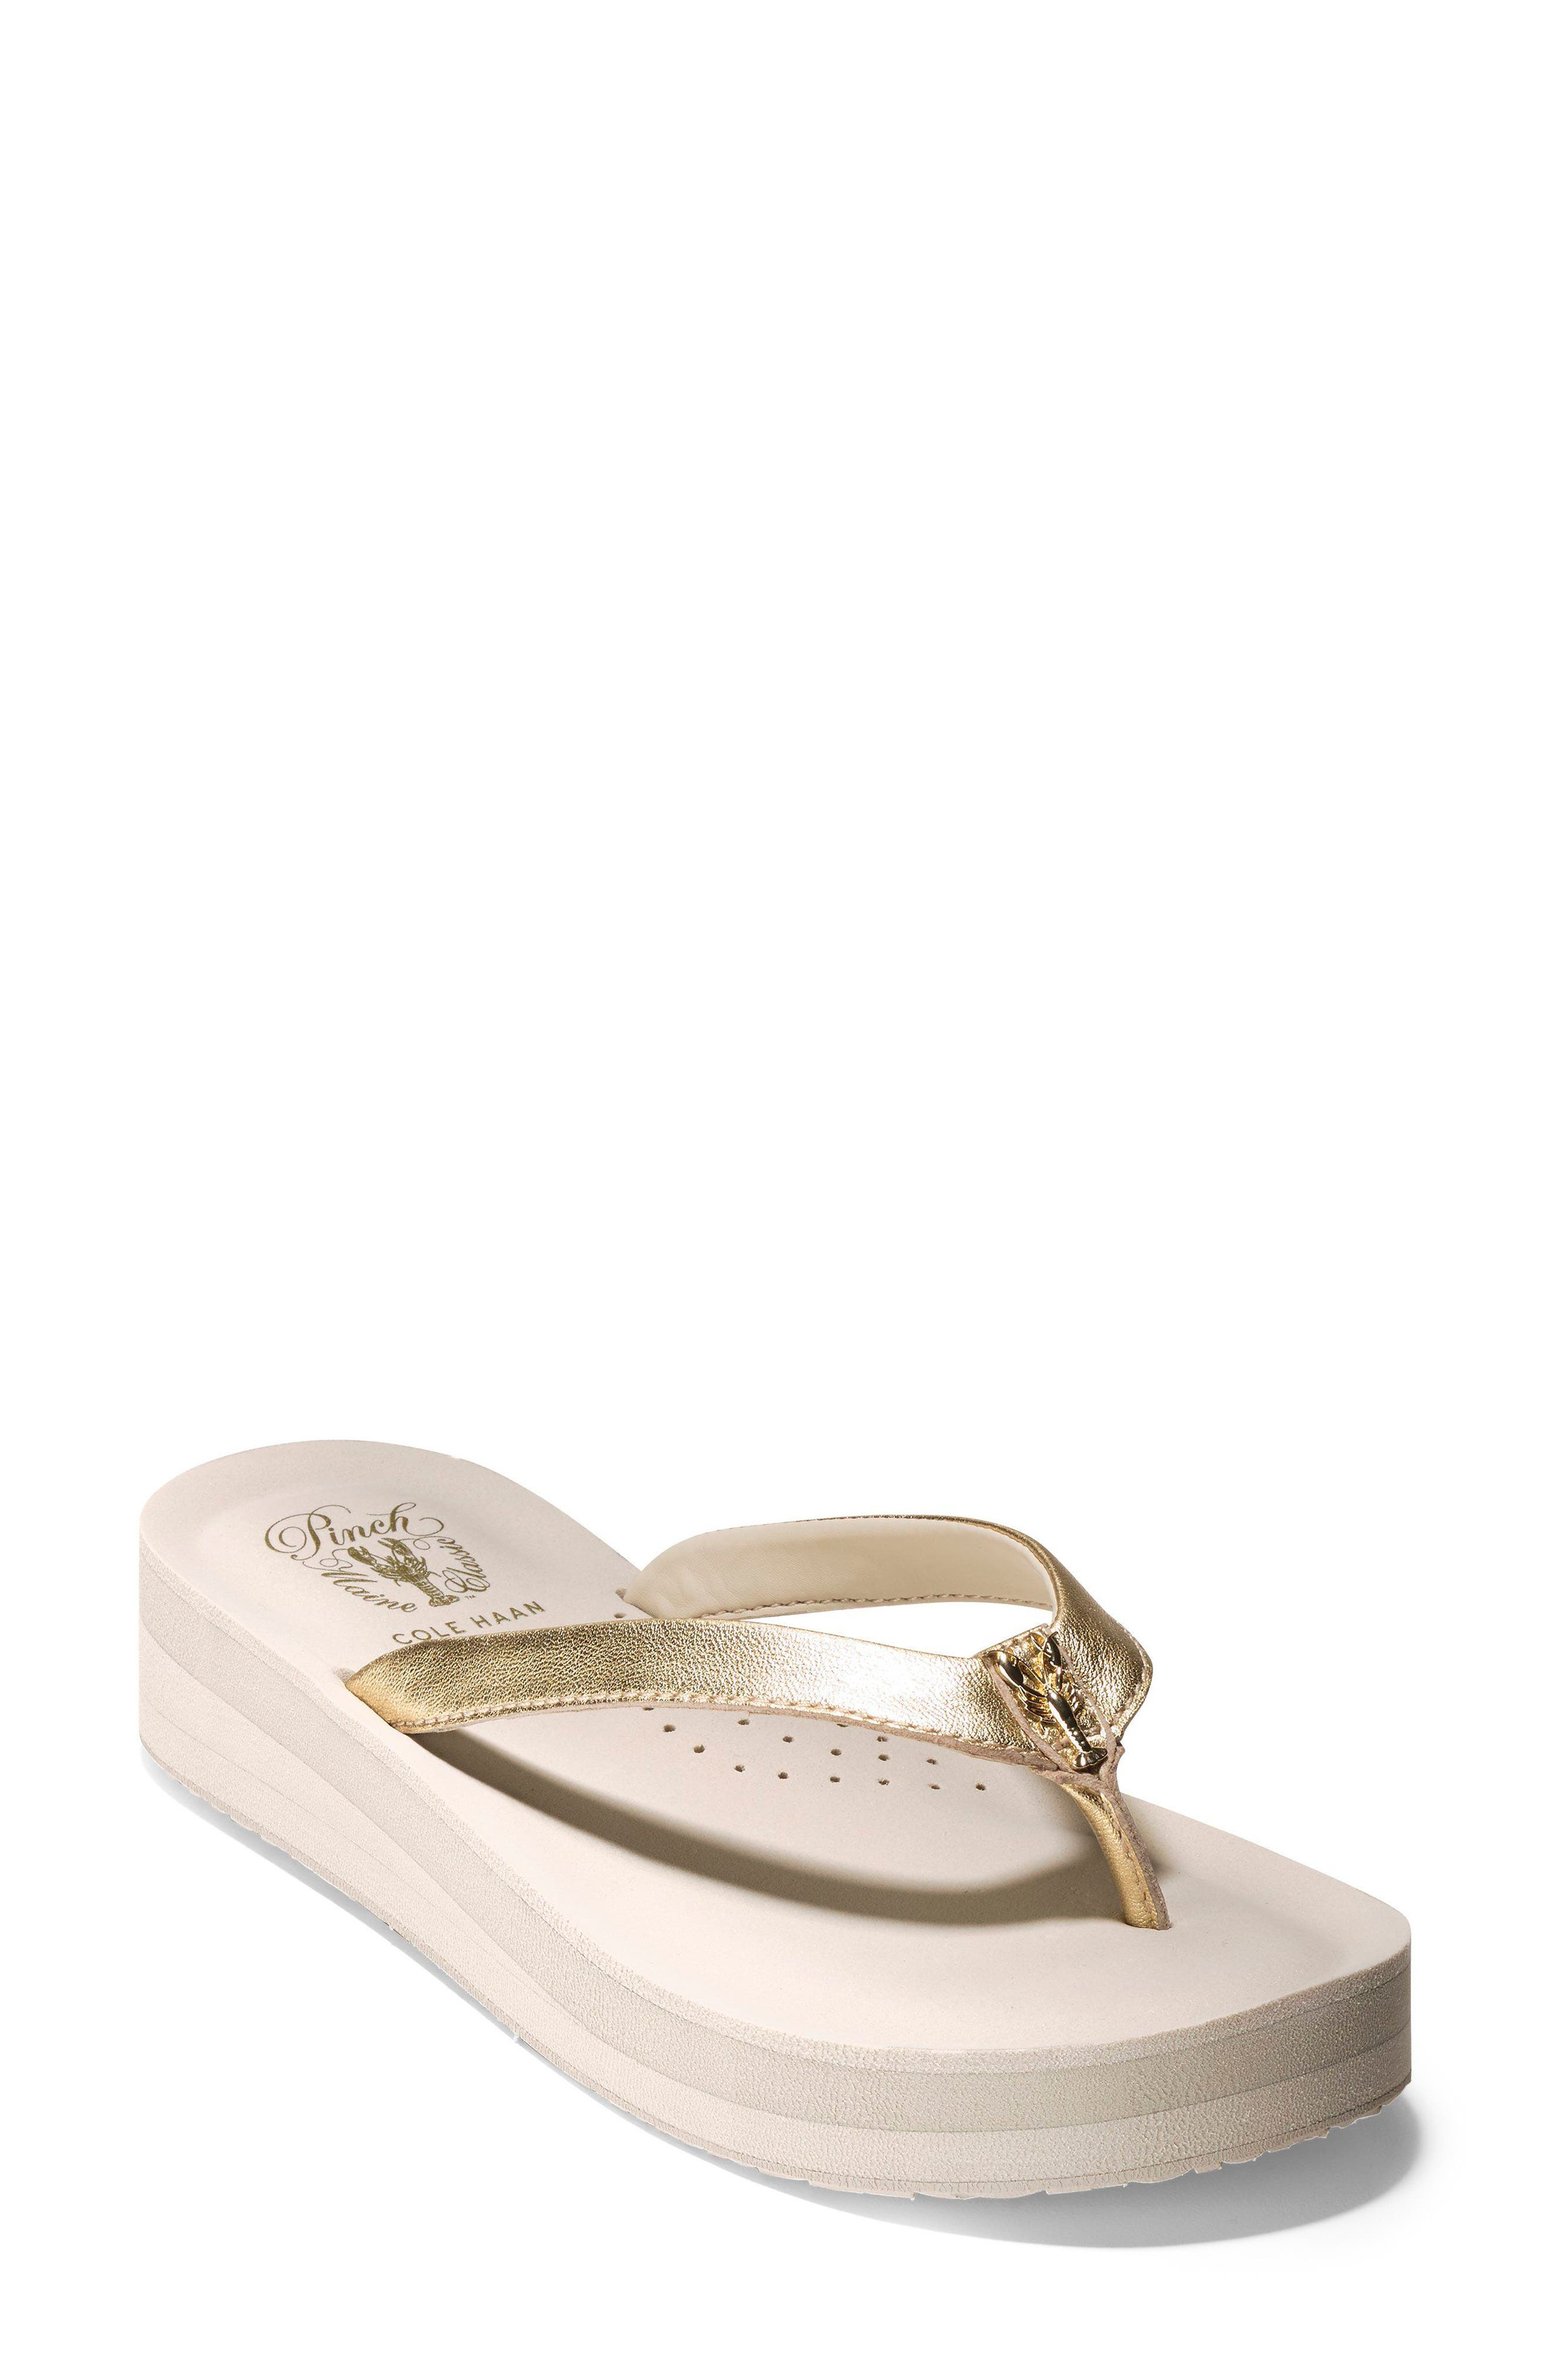 Lobster Wedge Flip Flop,                             Main thumbnail 1, color,                             Gold/ Pumice Stone Leather